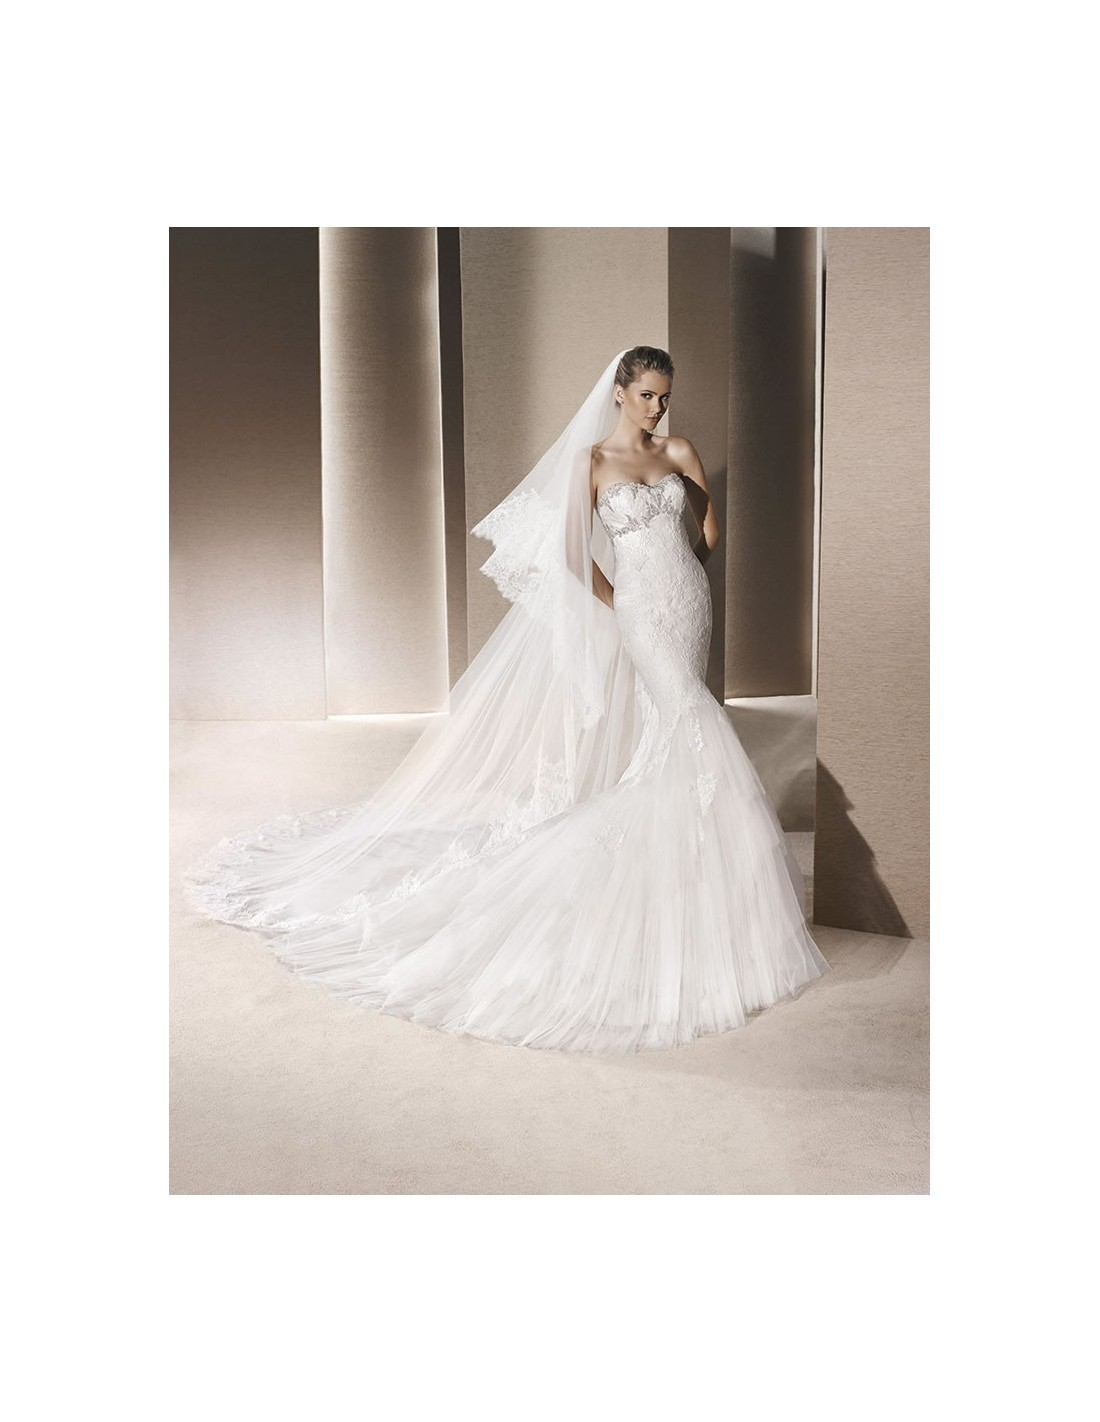 wedding dress rubila sposa - sedka novias